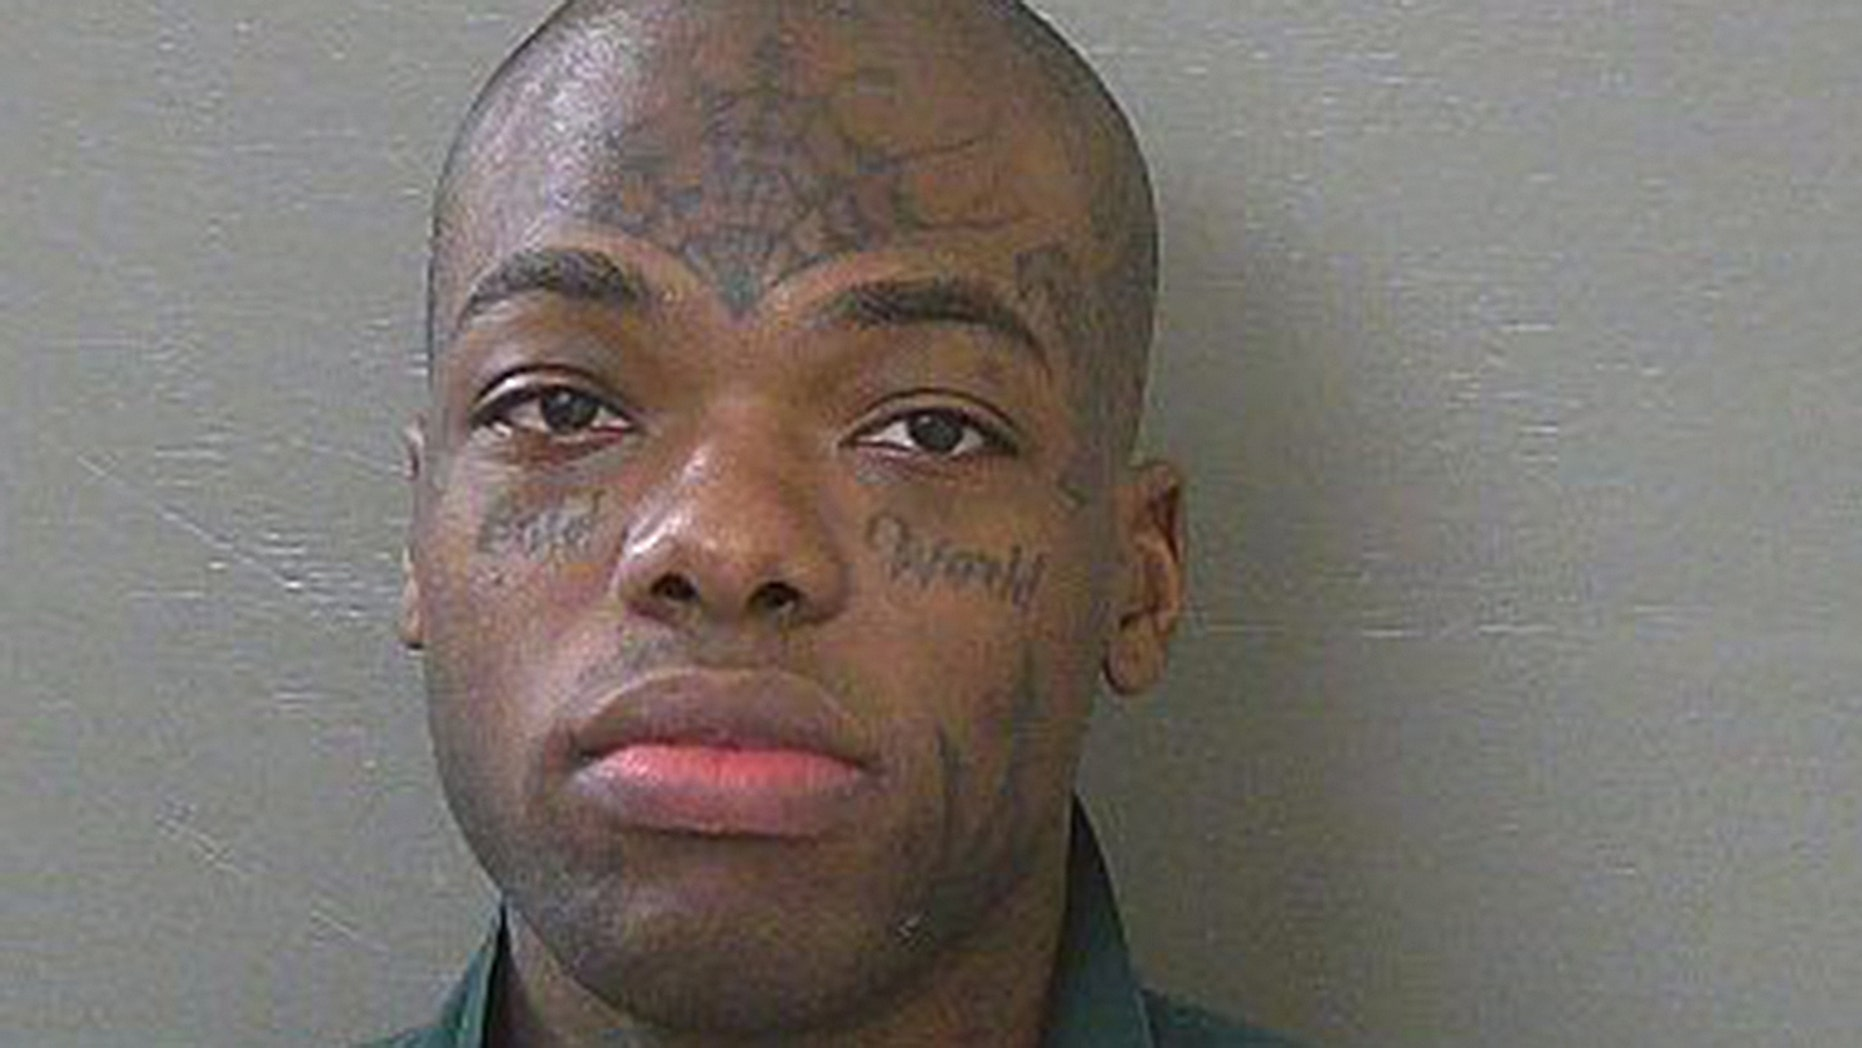 Orlance Sangster, a convicted drug dealer, is accused of killing a rival dealer.